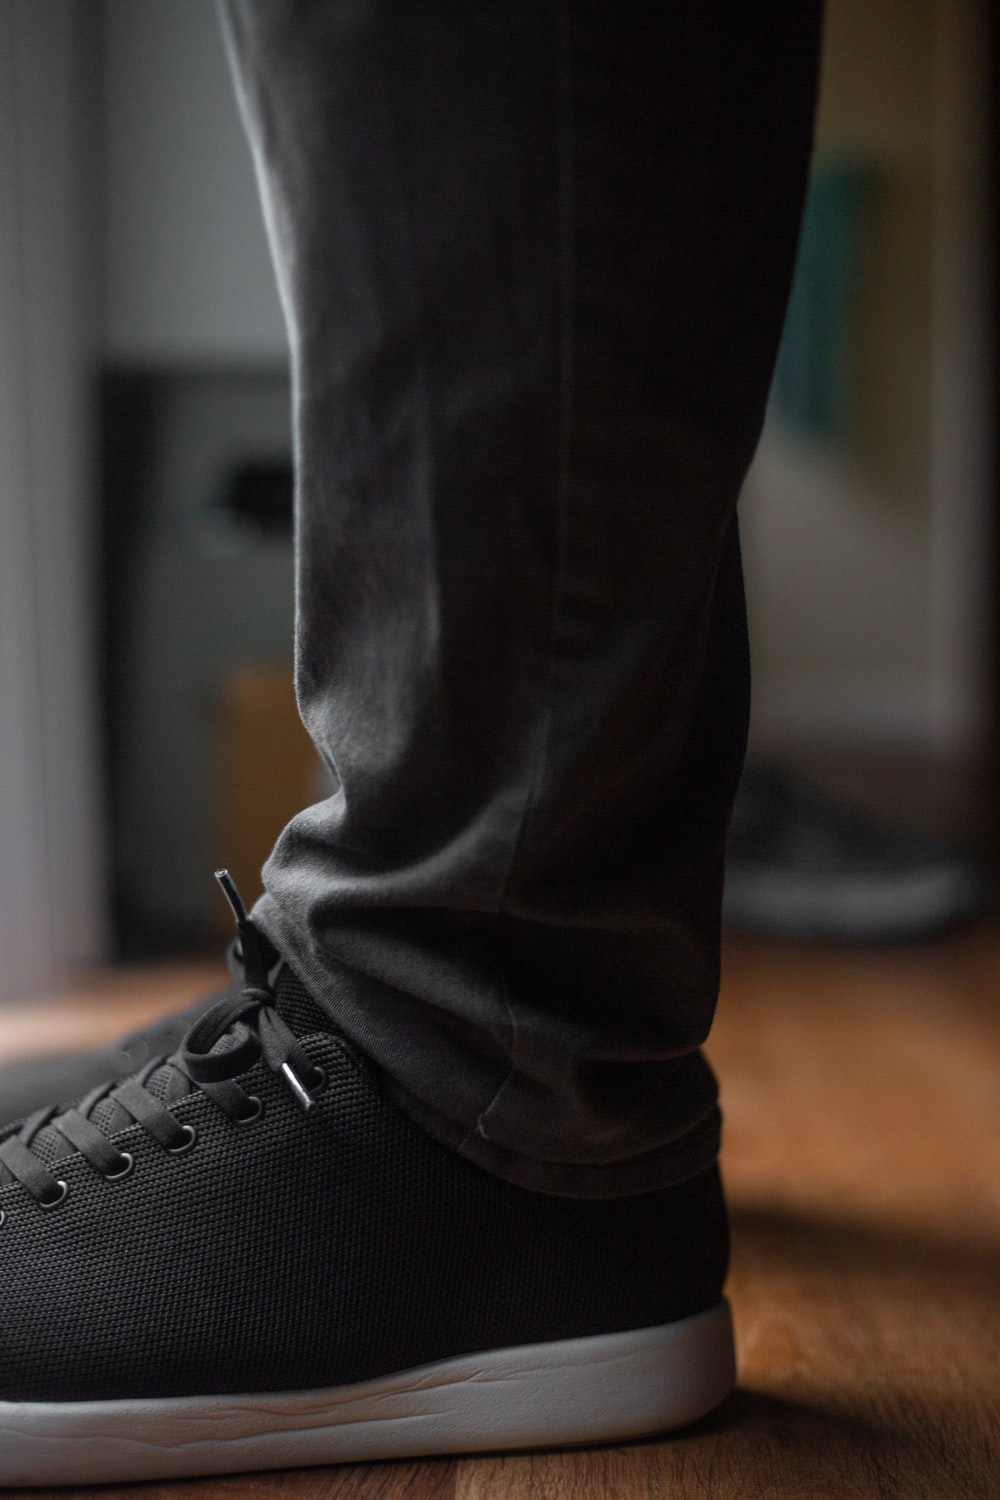 person wearing black leather boot